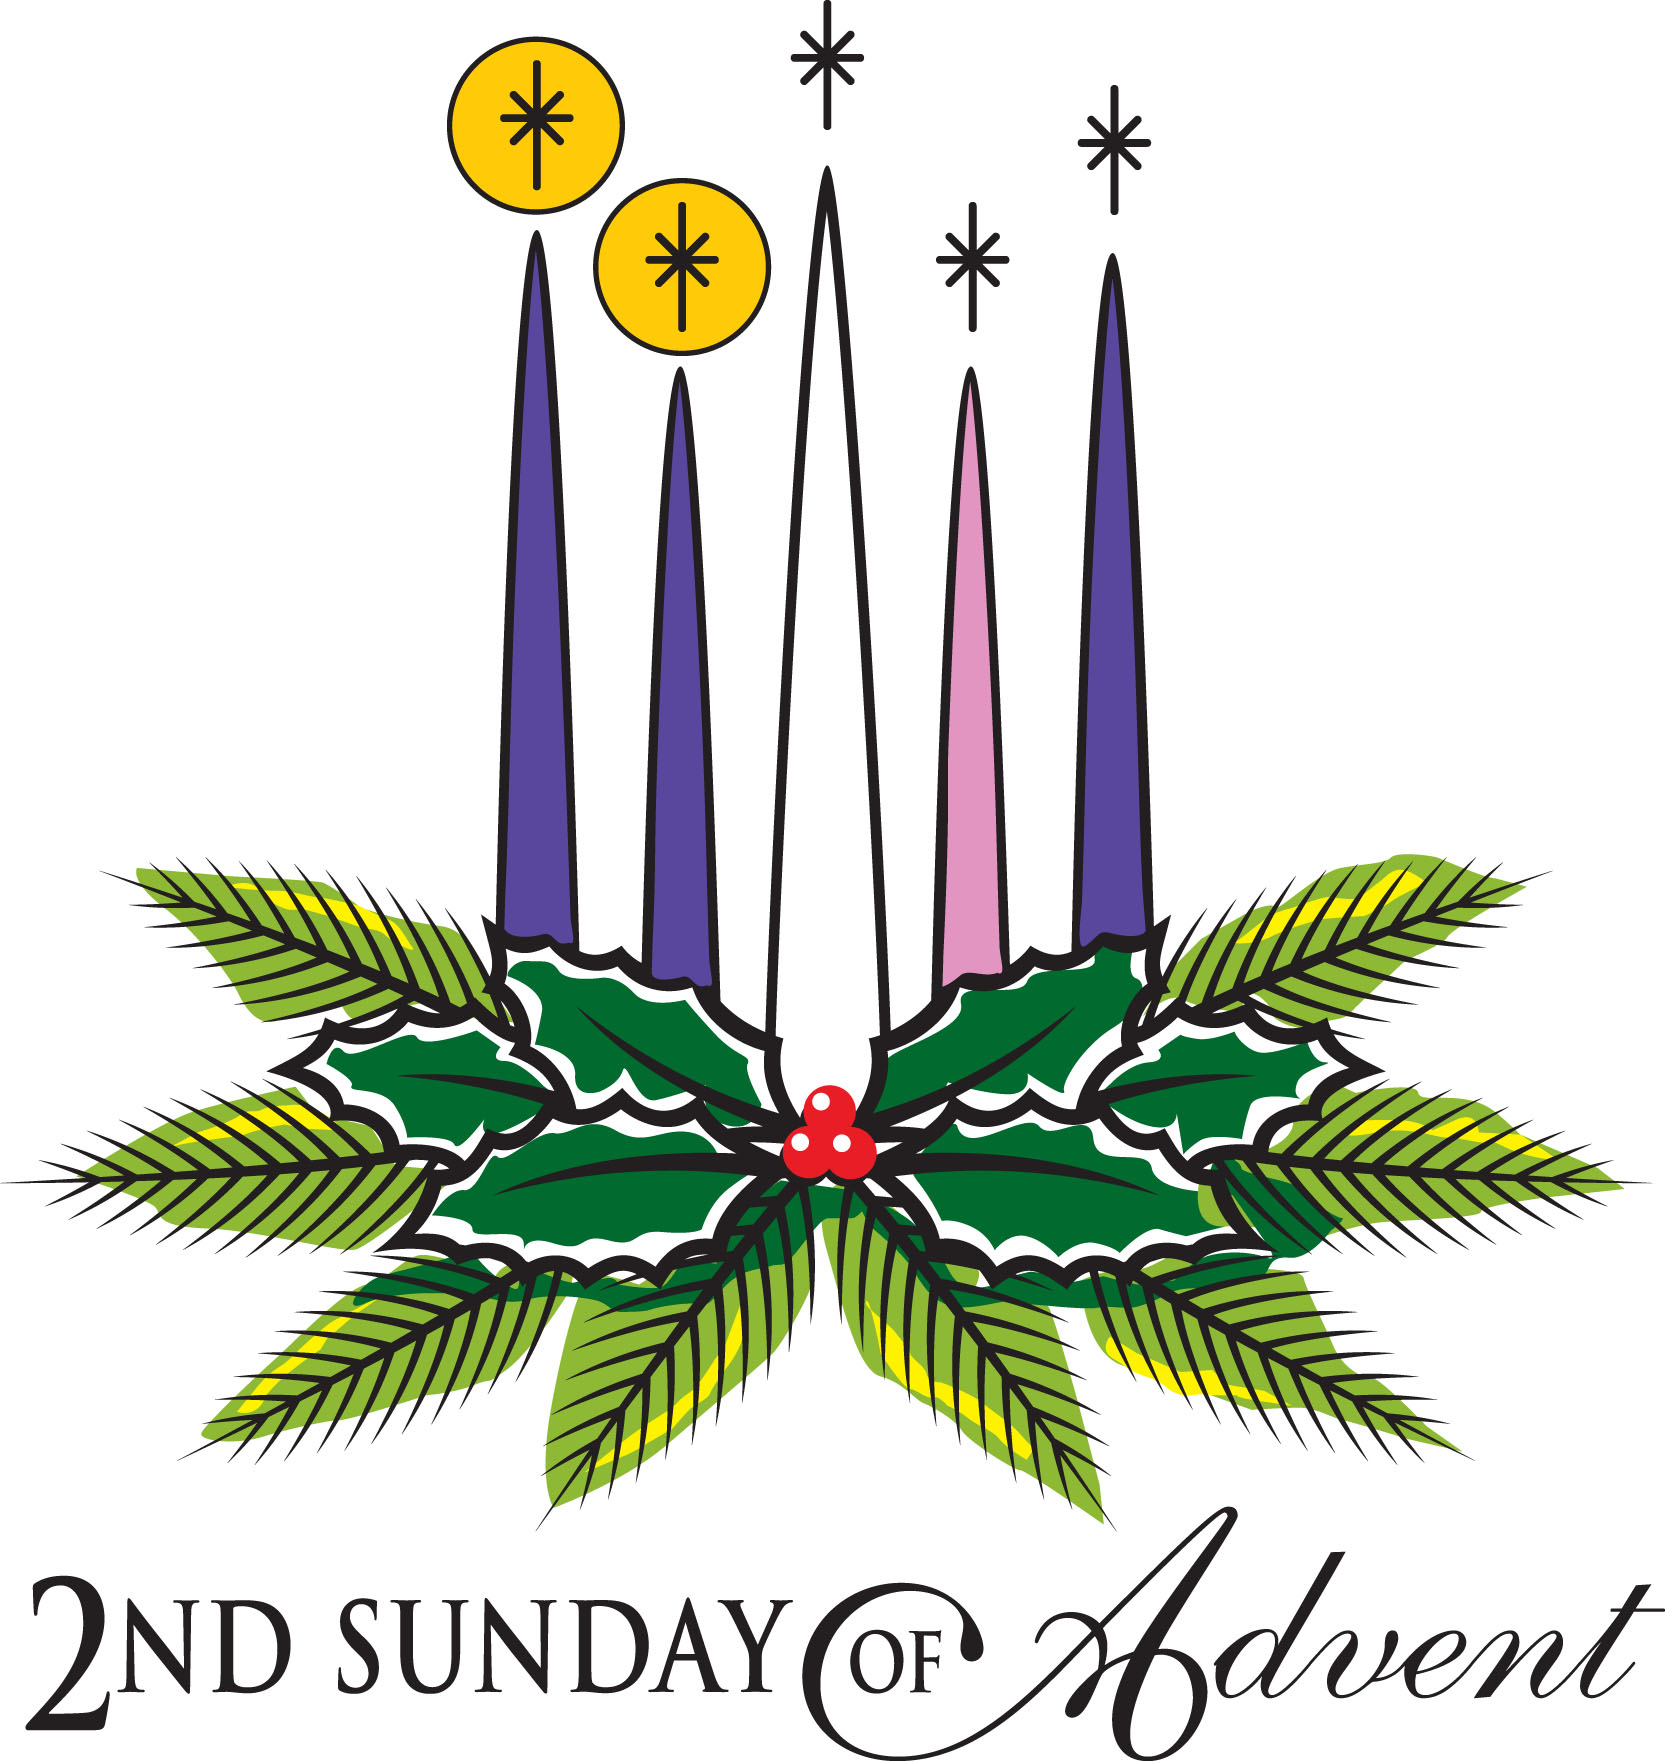 Advent clipart clip art. Second sunday of picture